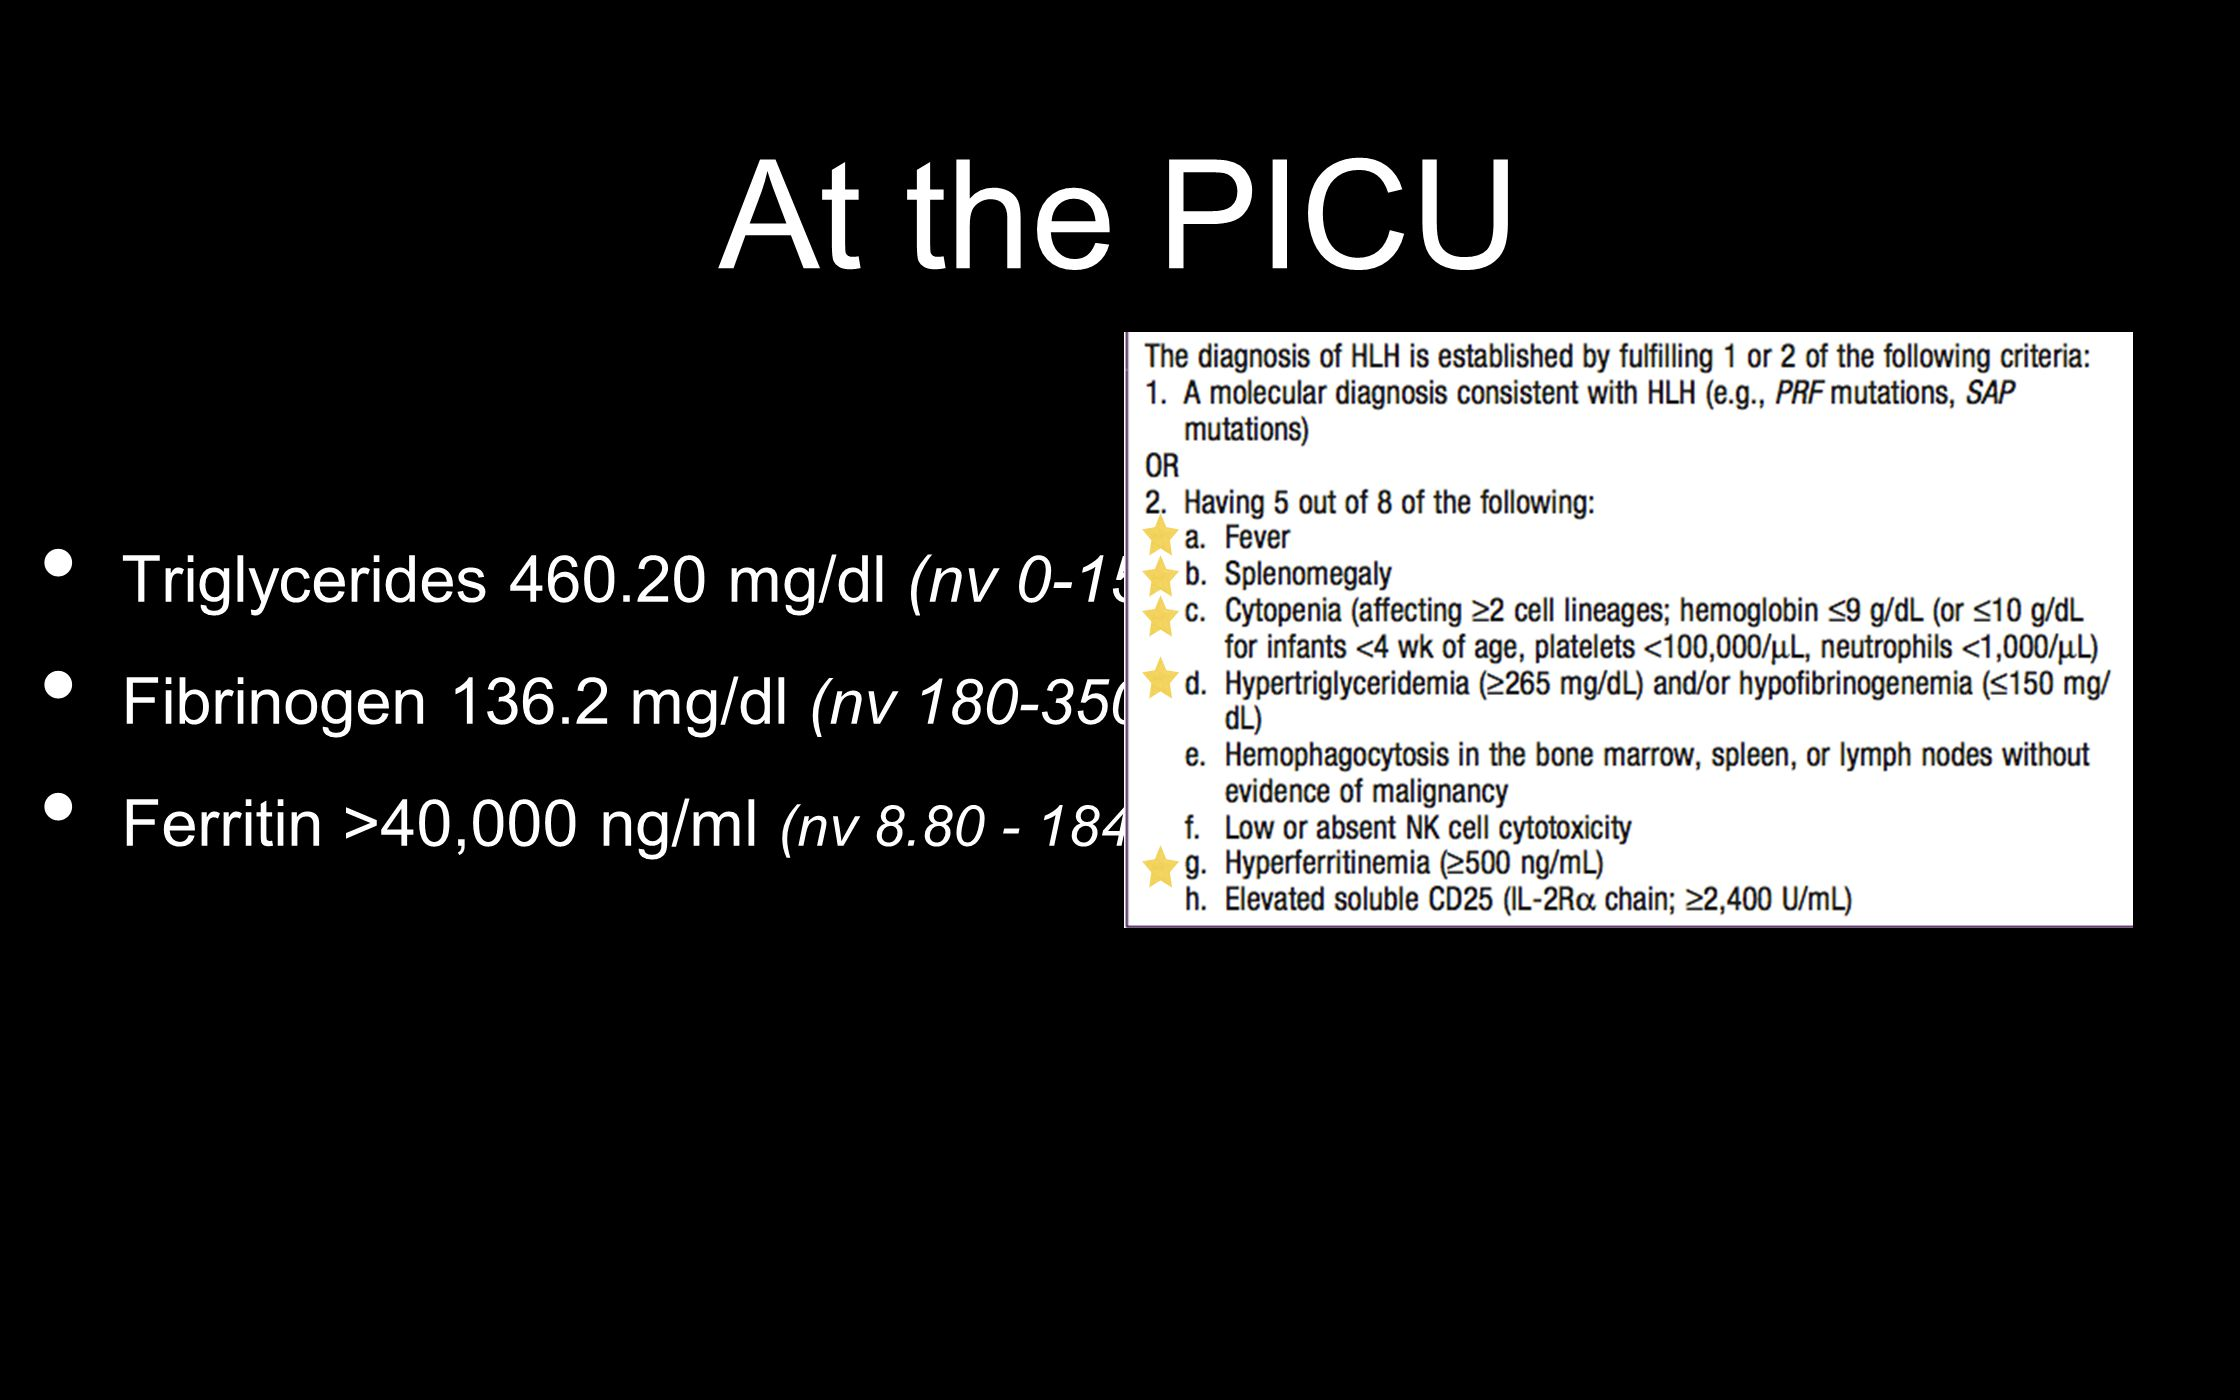 At the PICU Triglycerides 460.20 mg/dl (nv 0-150)